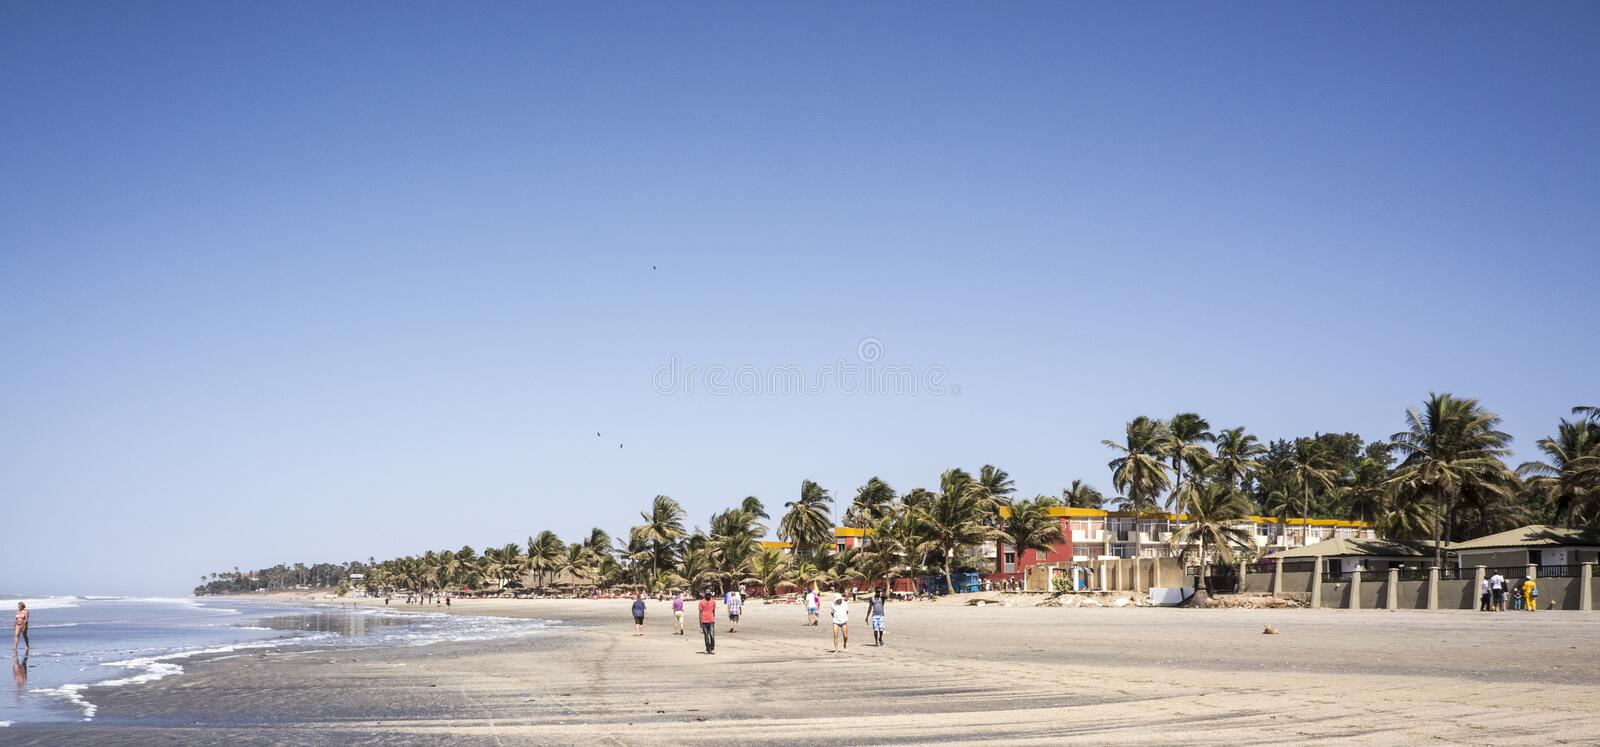 Tropical beach in Gambia, West Africa stock photography